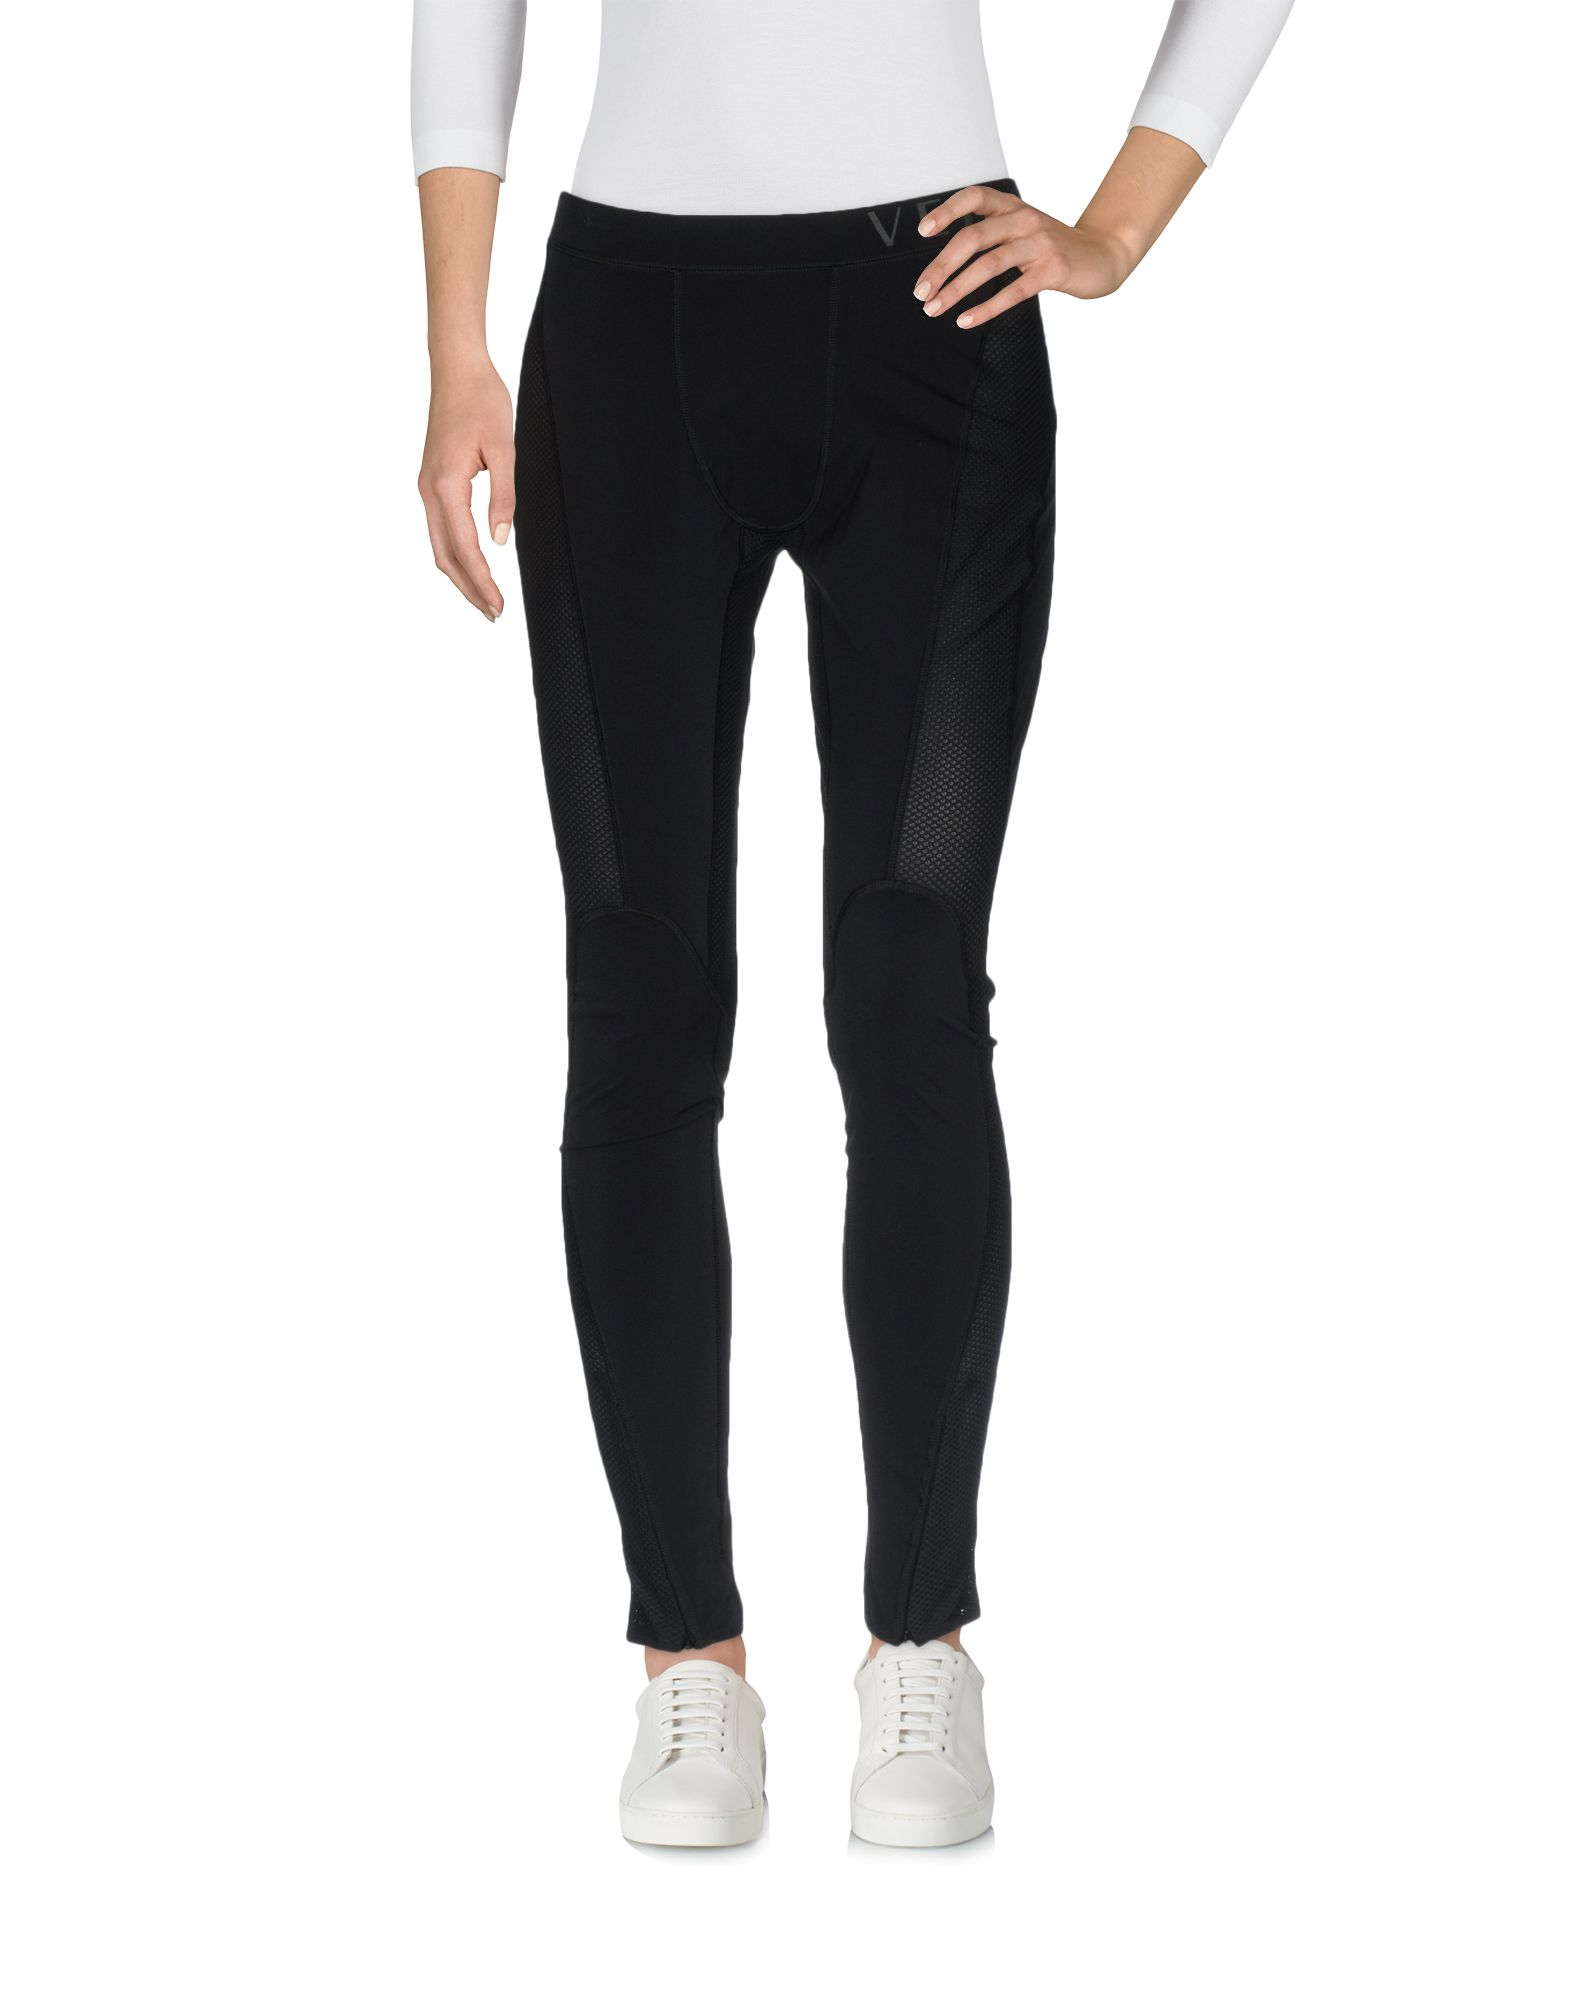 LOGO STRETCH NYLON JERSEY LEGGINGS